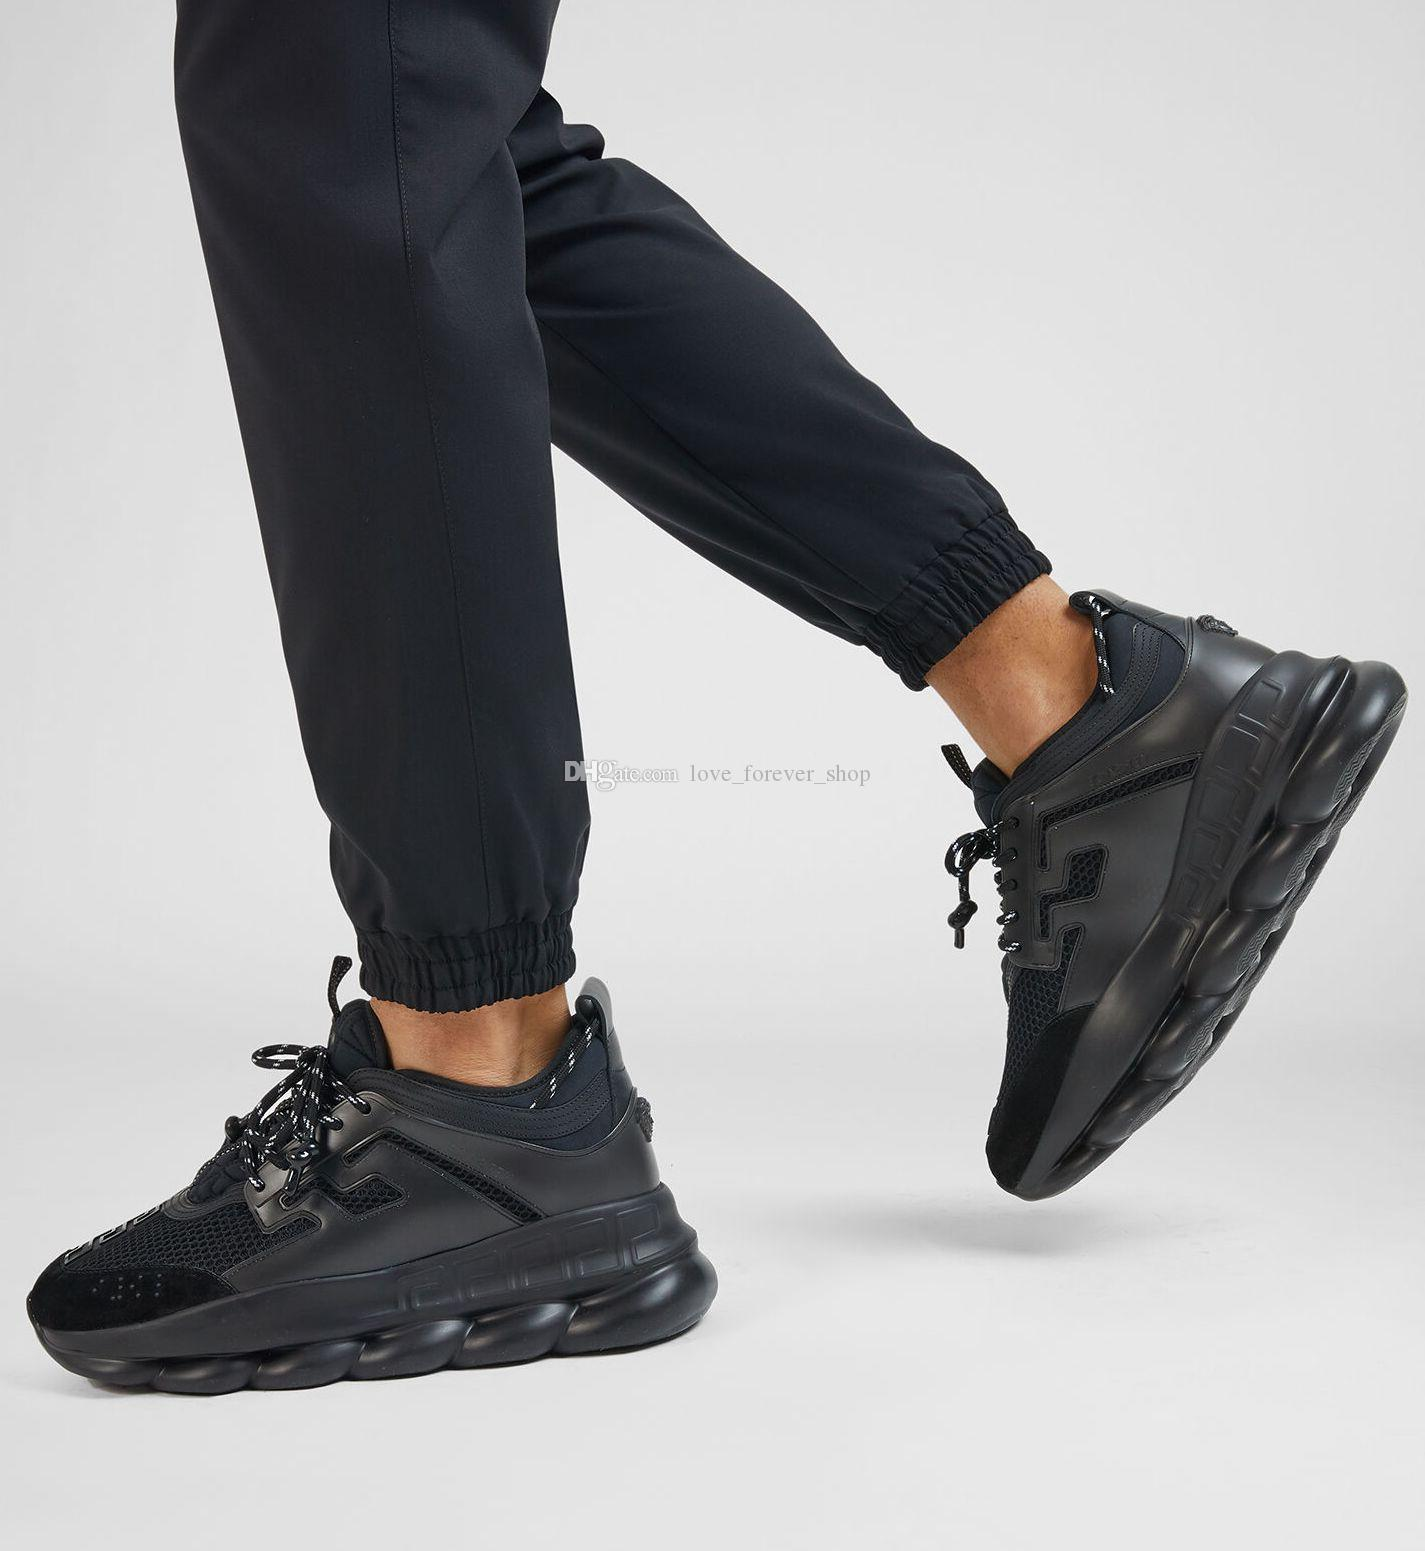 2019 ACE Chain Reaction Love Sneakers Sport Fashion Luxury Designer Casual